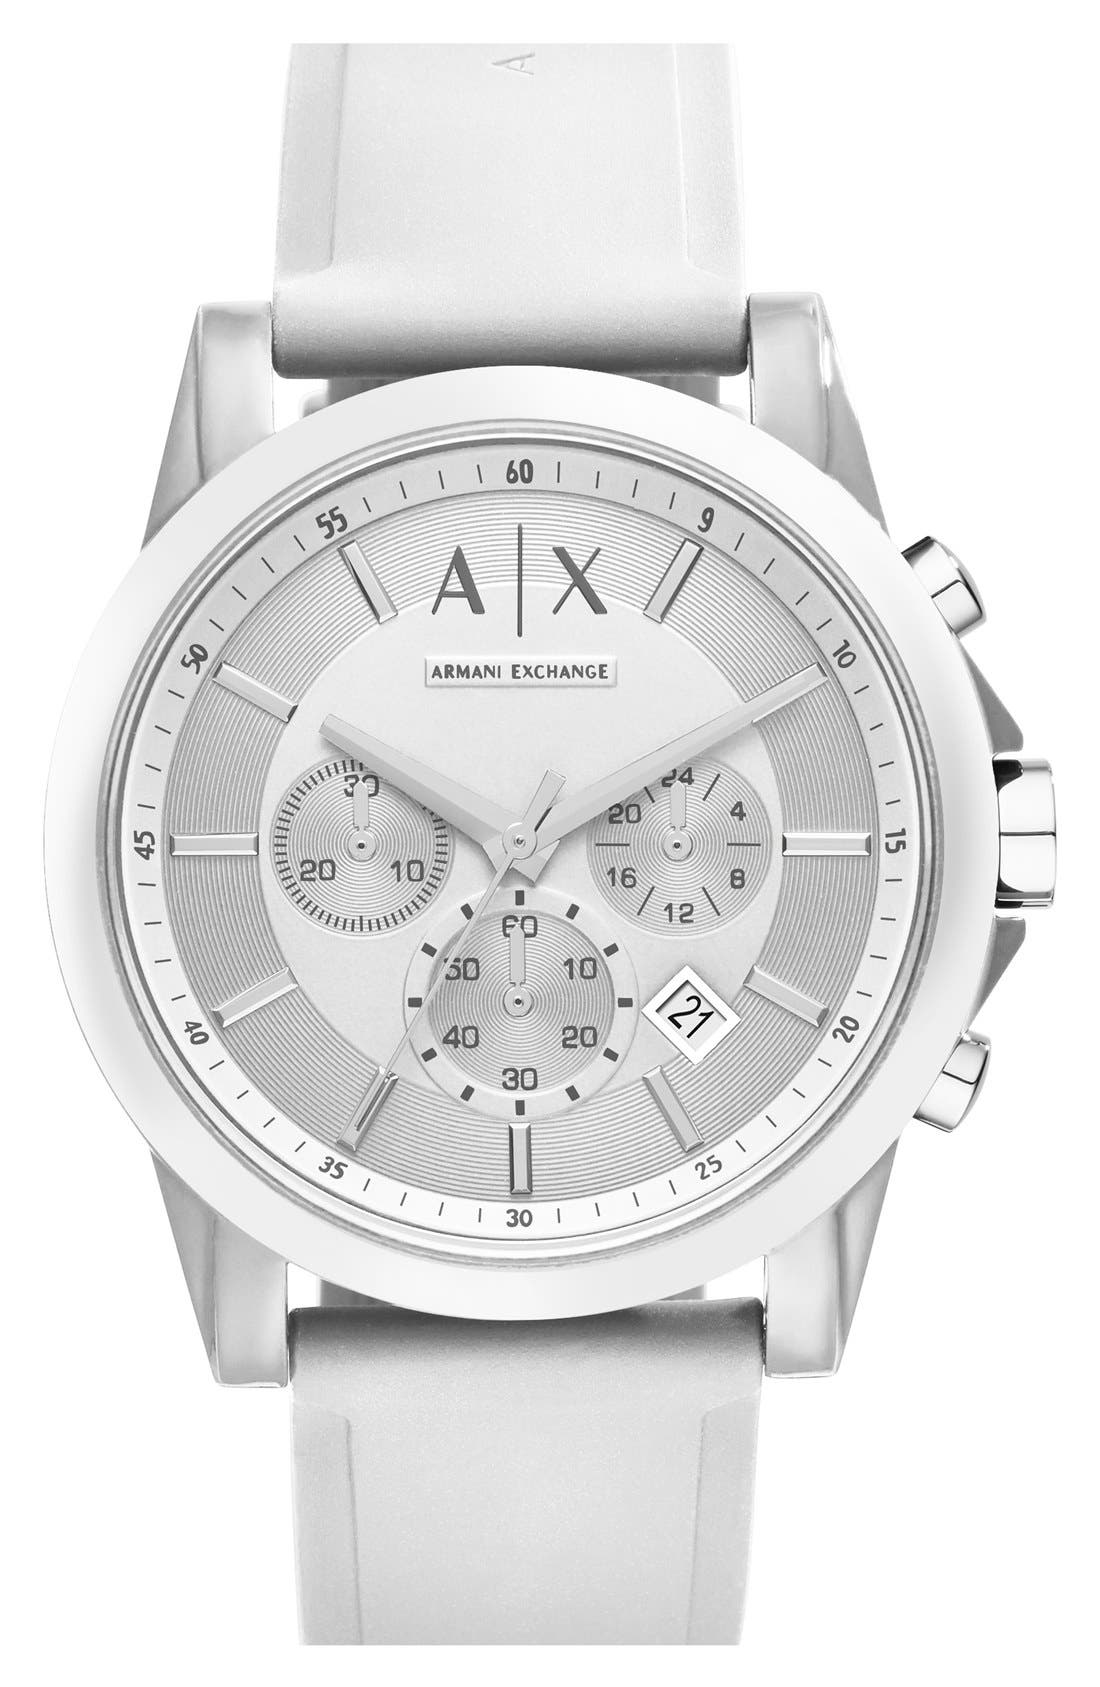 AX ARMANI EXCHANGE Chronograph Silicone Strap Watch, 44mm, Main, color, 100